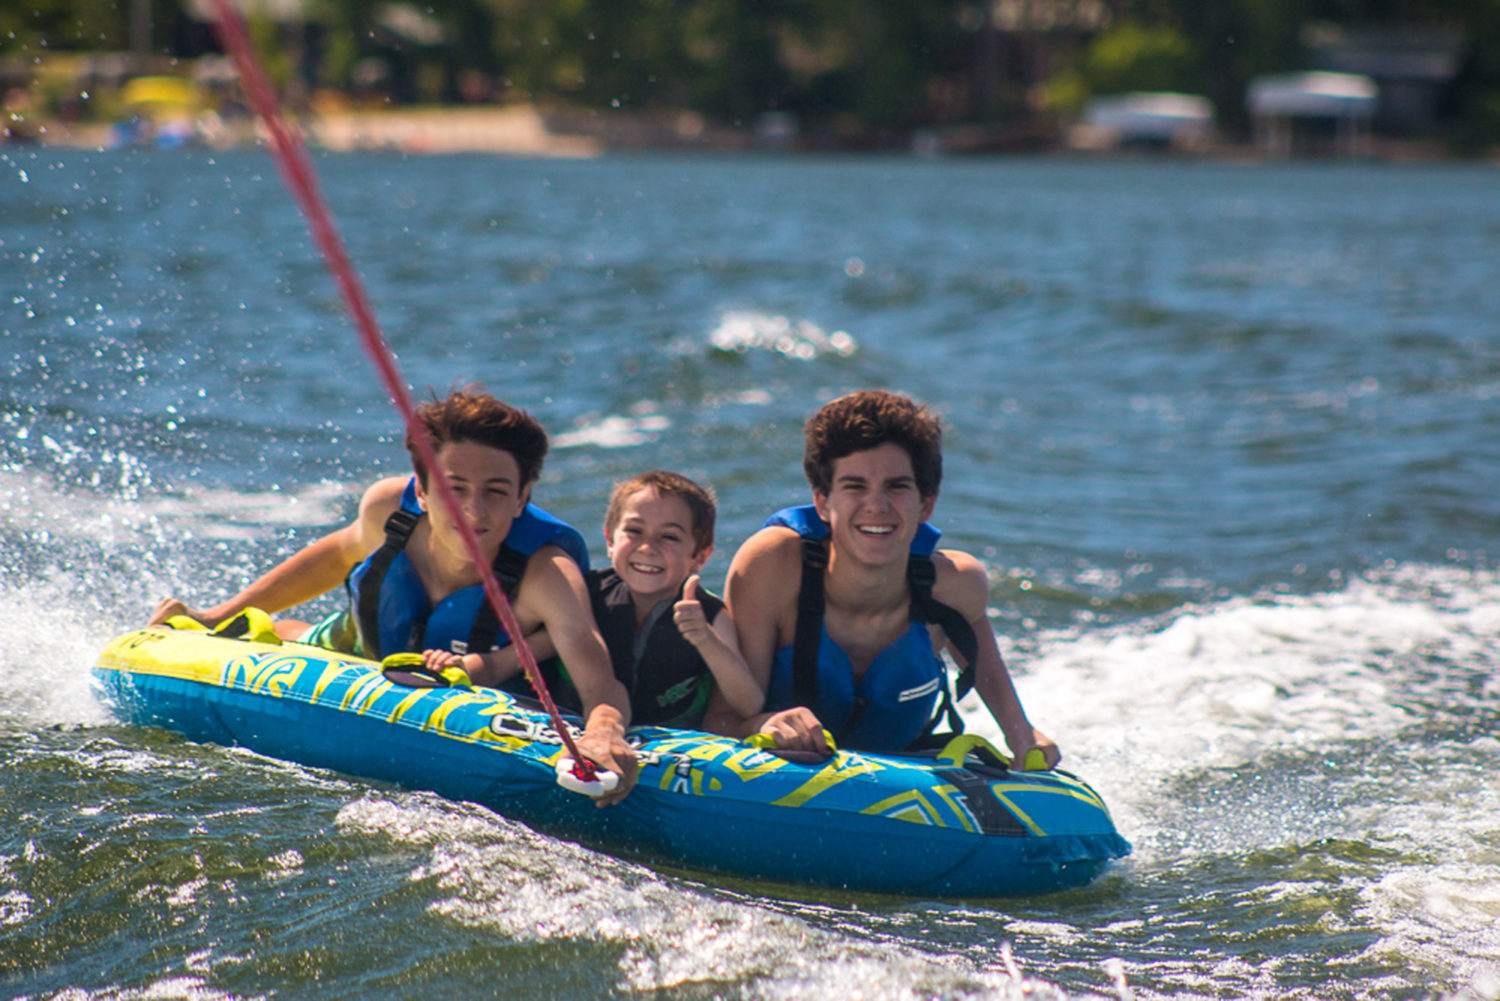 Kids water skiing behind a boat on a lake